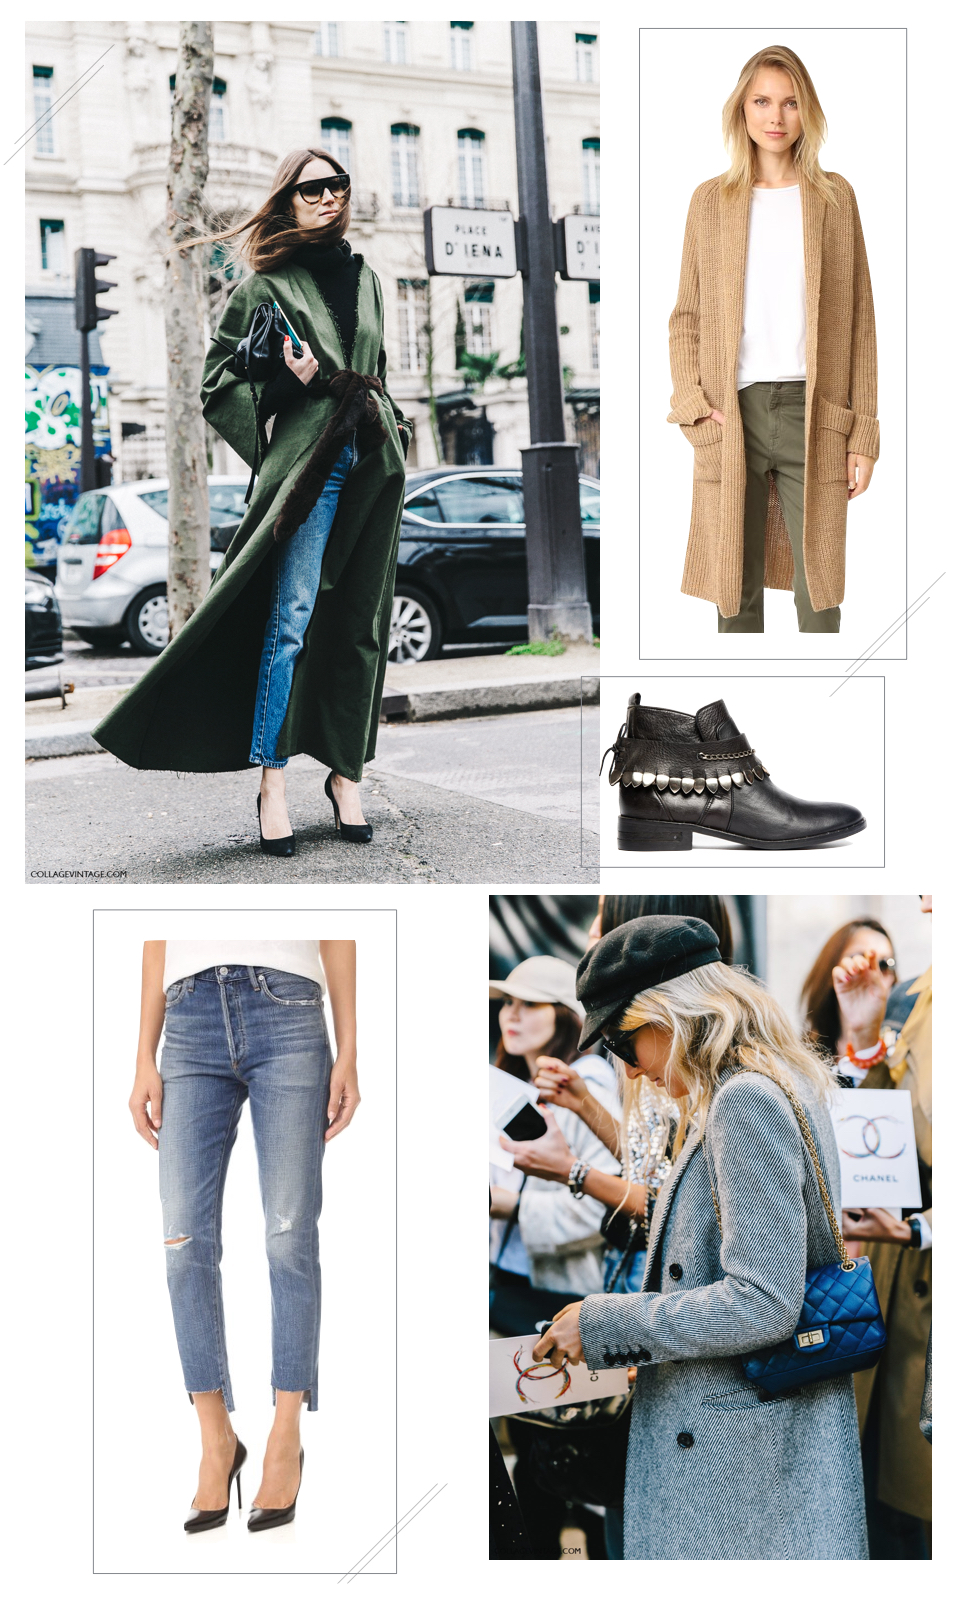 fall essentials: what to shop for this season